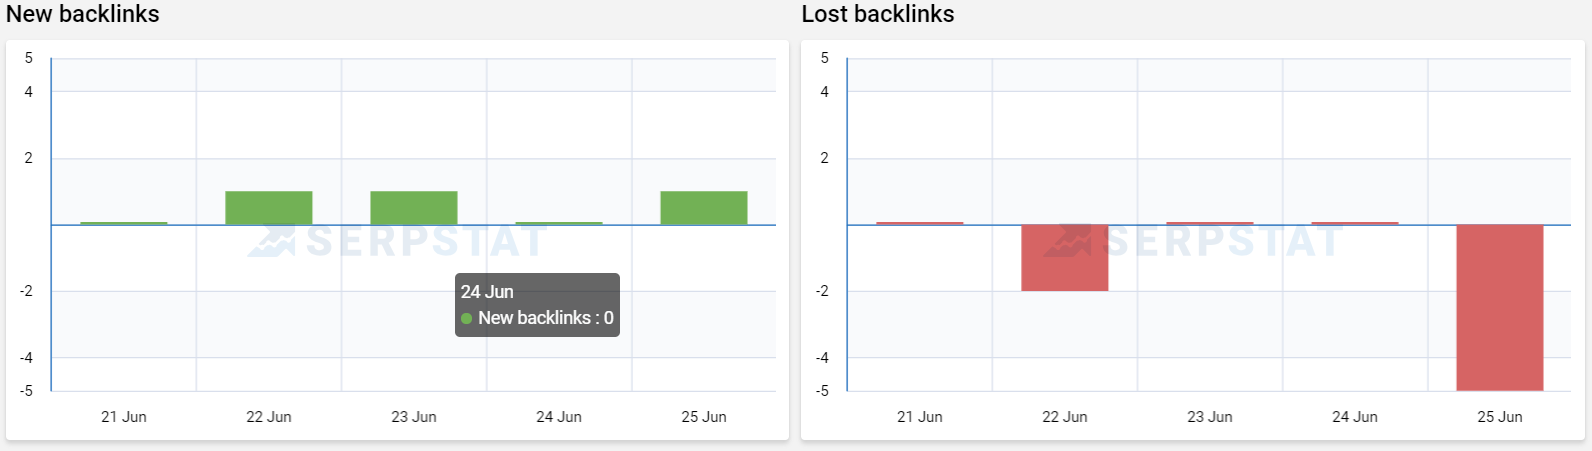 backlink-progress